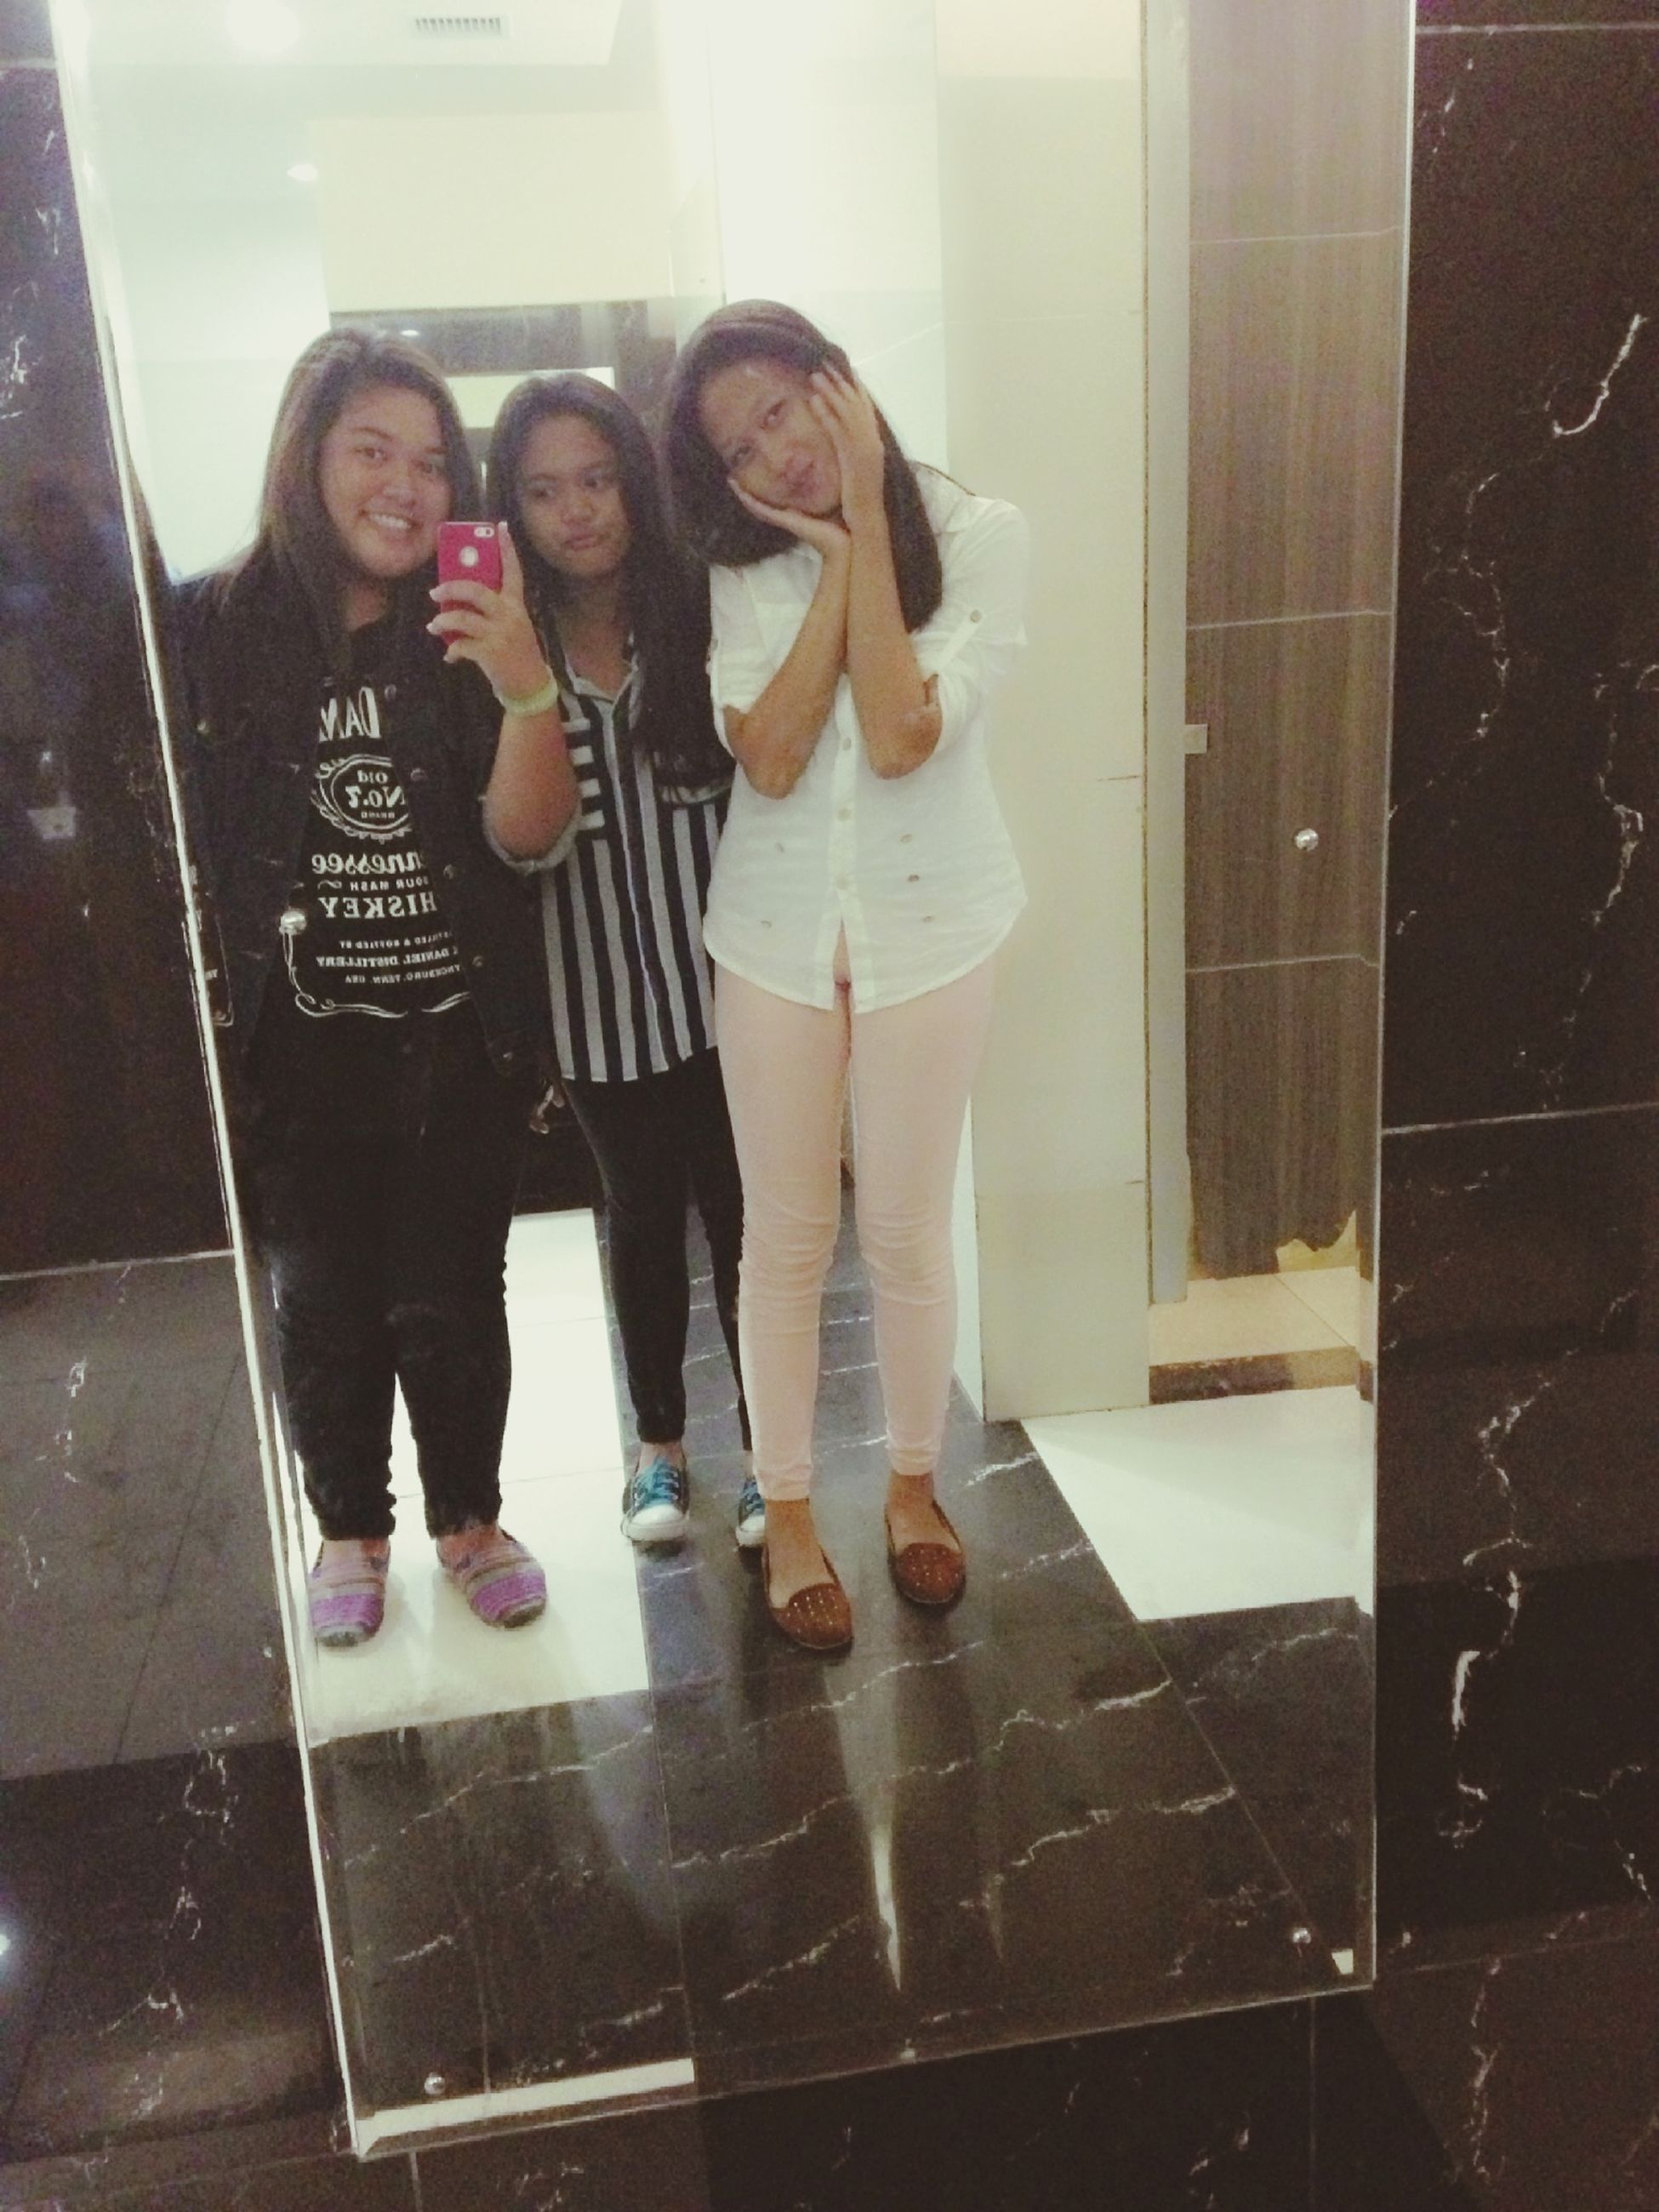 lifestyles, indoors, full length, casual clothing, standing, leisure activity, young adult, person, young women, reflection, front view, tiled floor, flooring, sitting, three quarter length, mirror, wall - building feature